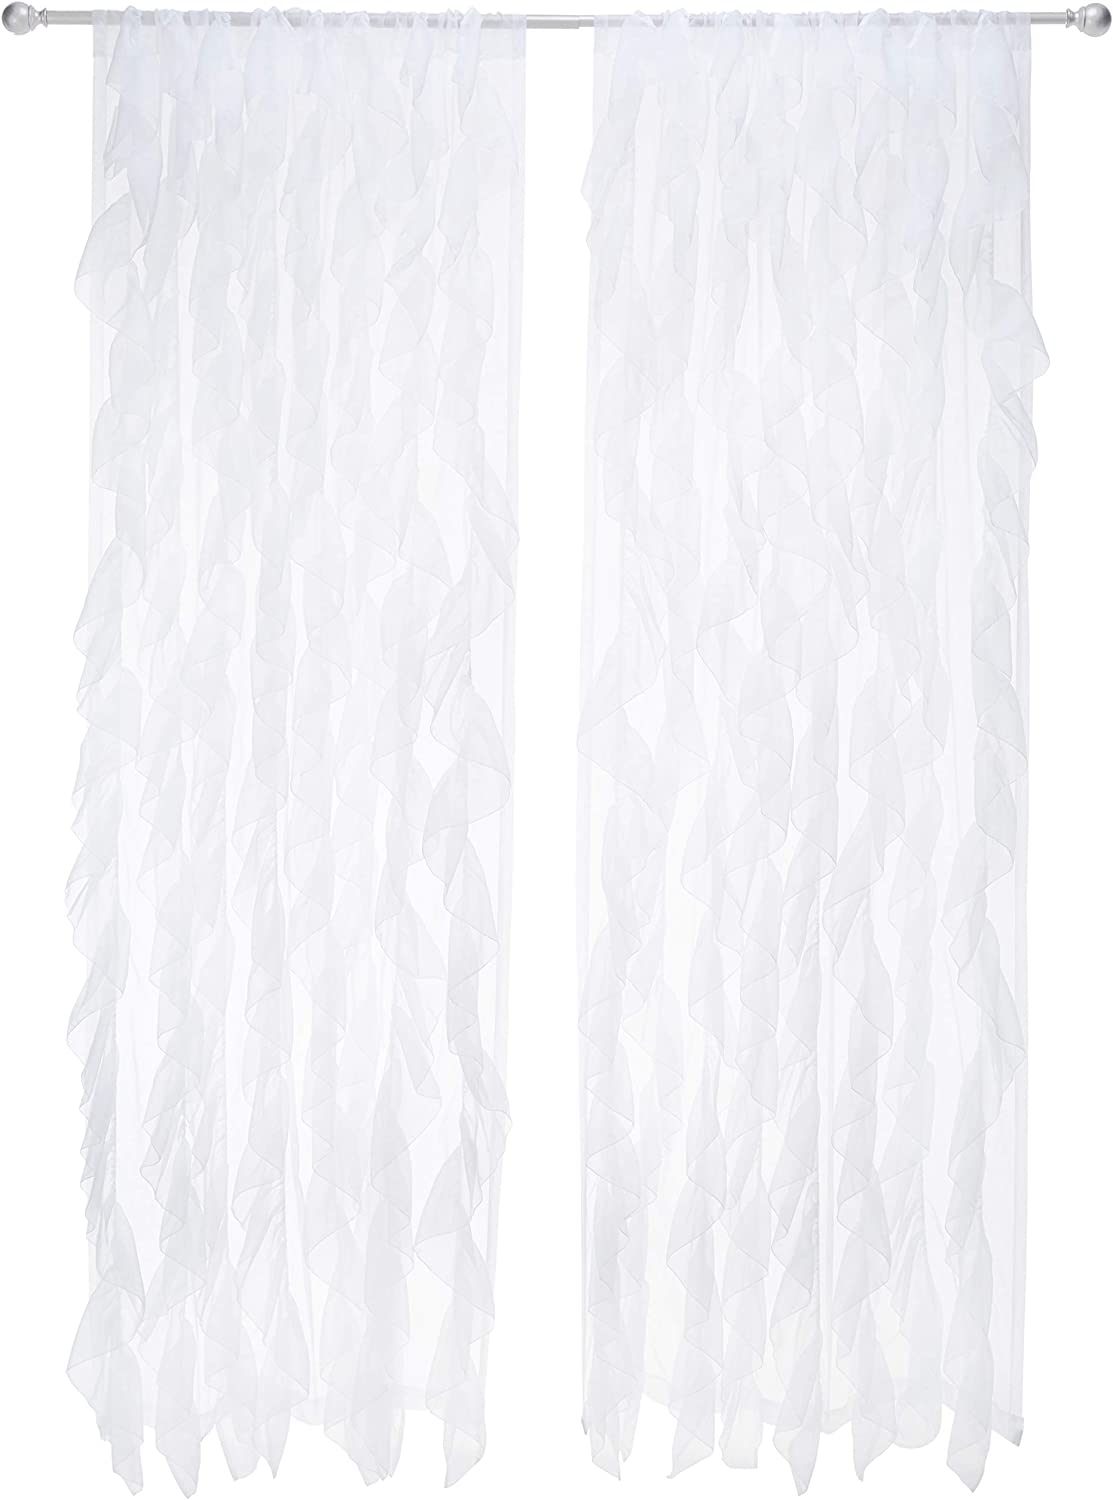 """Sweet Home Collection 2 Pack Window Panel Sheer Voile Vertical Ruffled Waterfall Curtains, 96"""" x 50"""", White"""